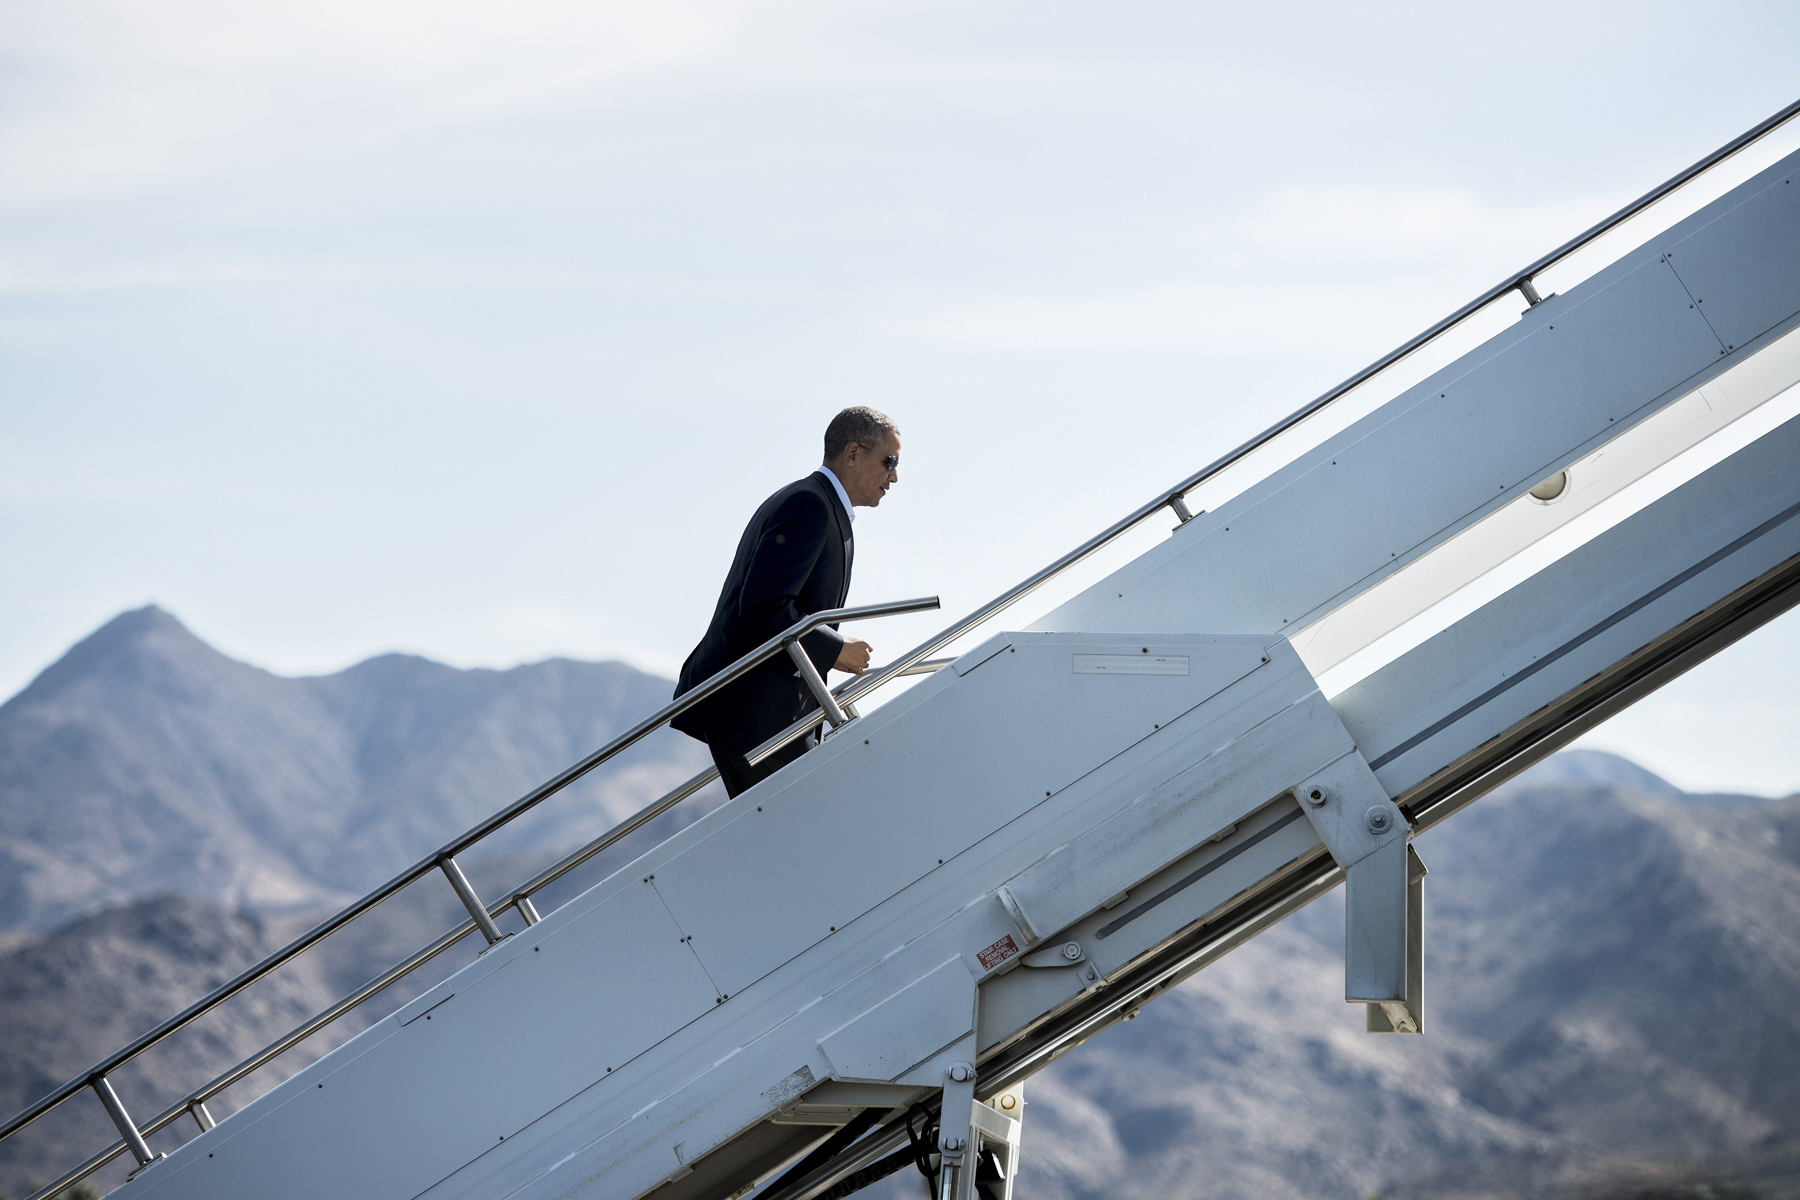 US President Barack Obama boards Air Force One at Palm Springs International Airport, Feb. 17, 2014 in Palm Springs, California. President Obama is returning to Washington,DC after spending the holiday weekend golfing in California.